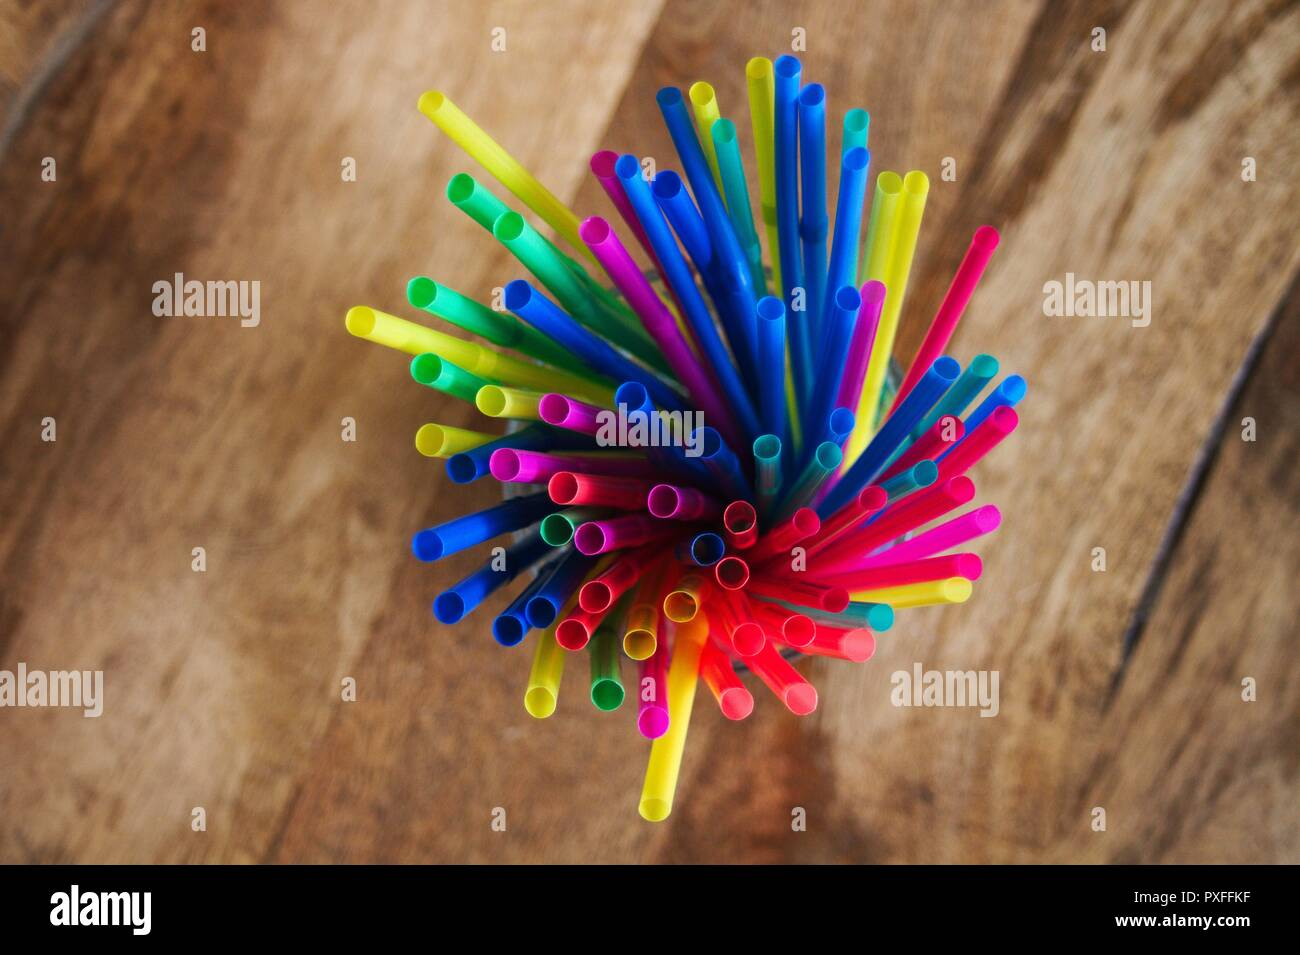 A collection of new plastic, disposable colored straws standing upright in a cup. Stock Photo